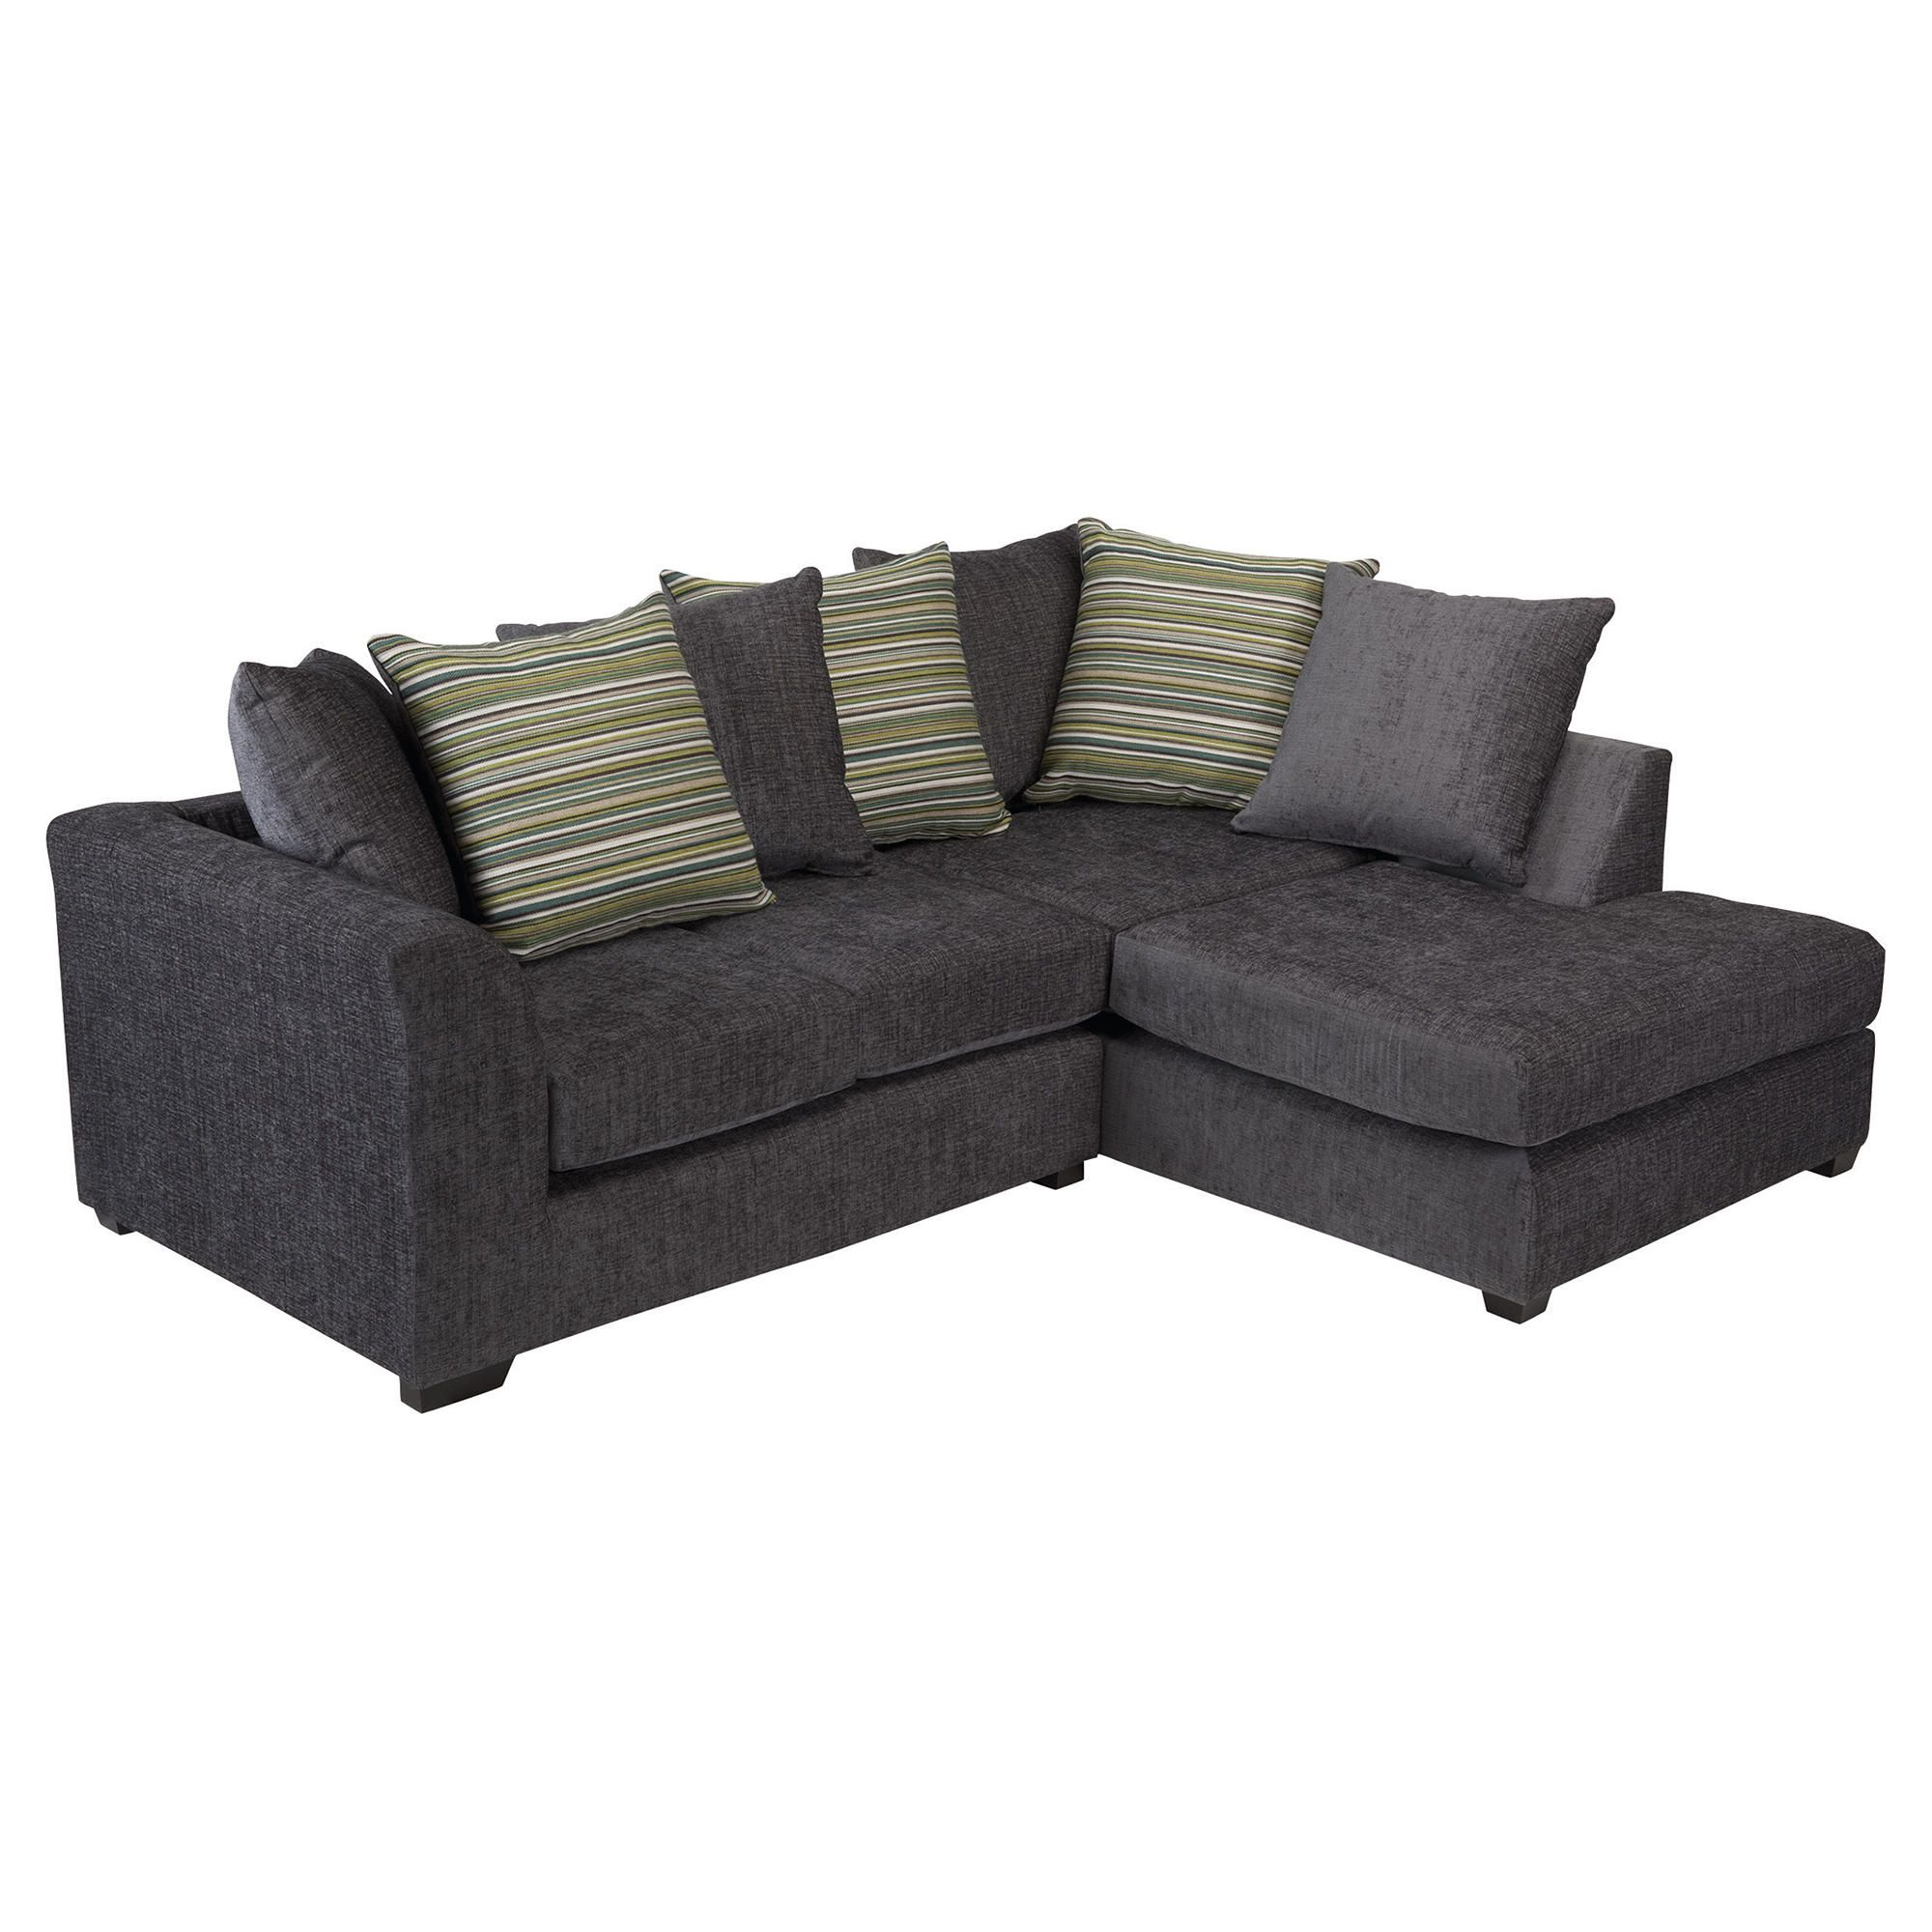 Toronto Fabric Corner Sofa Right Hand Facing, Charcoal at Tescos Direct